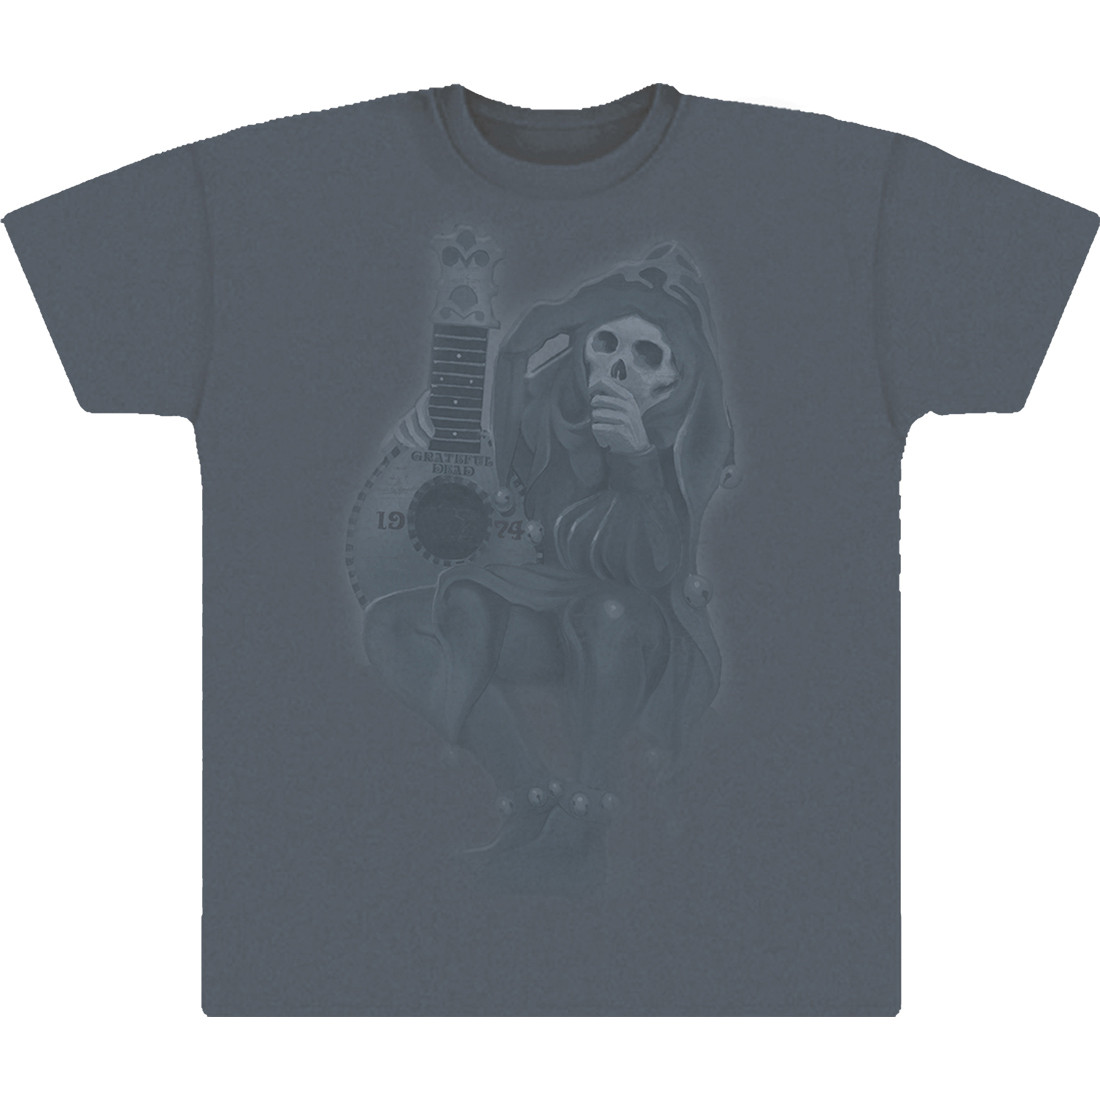 GD Jester Grey T-Shirt